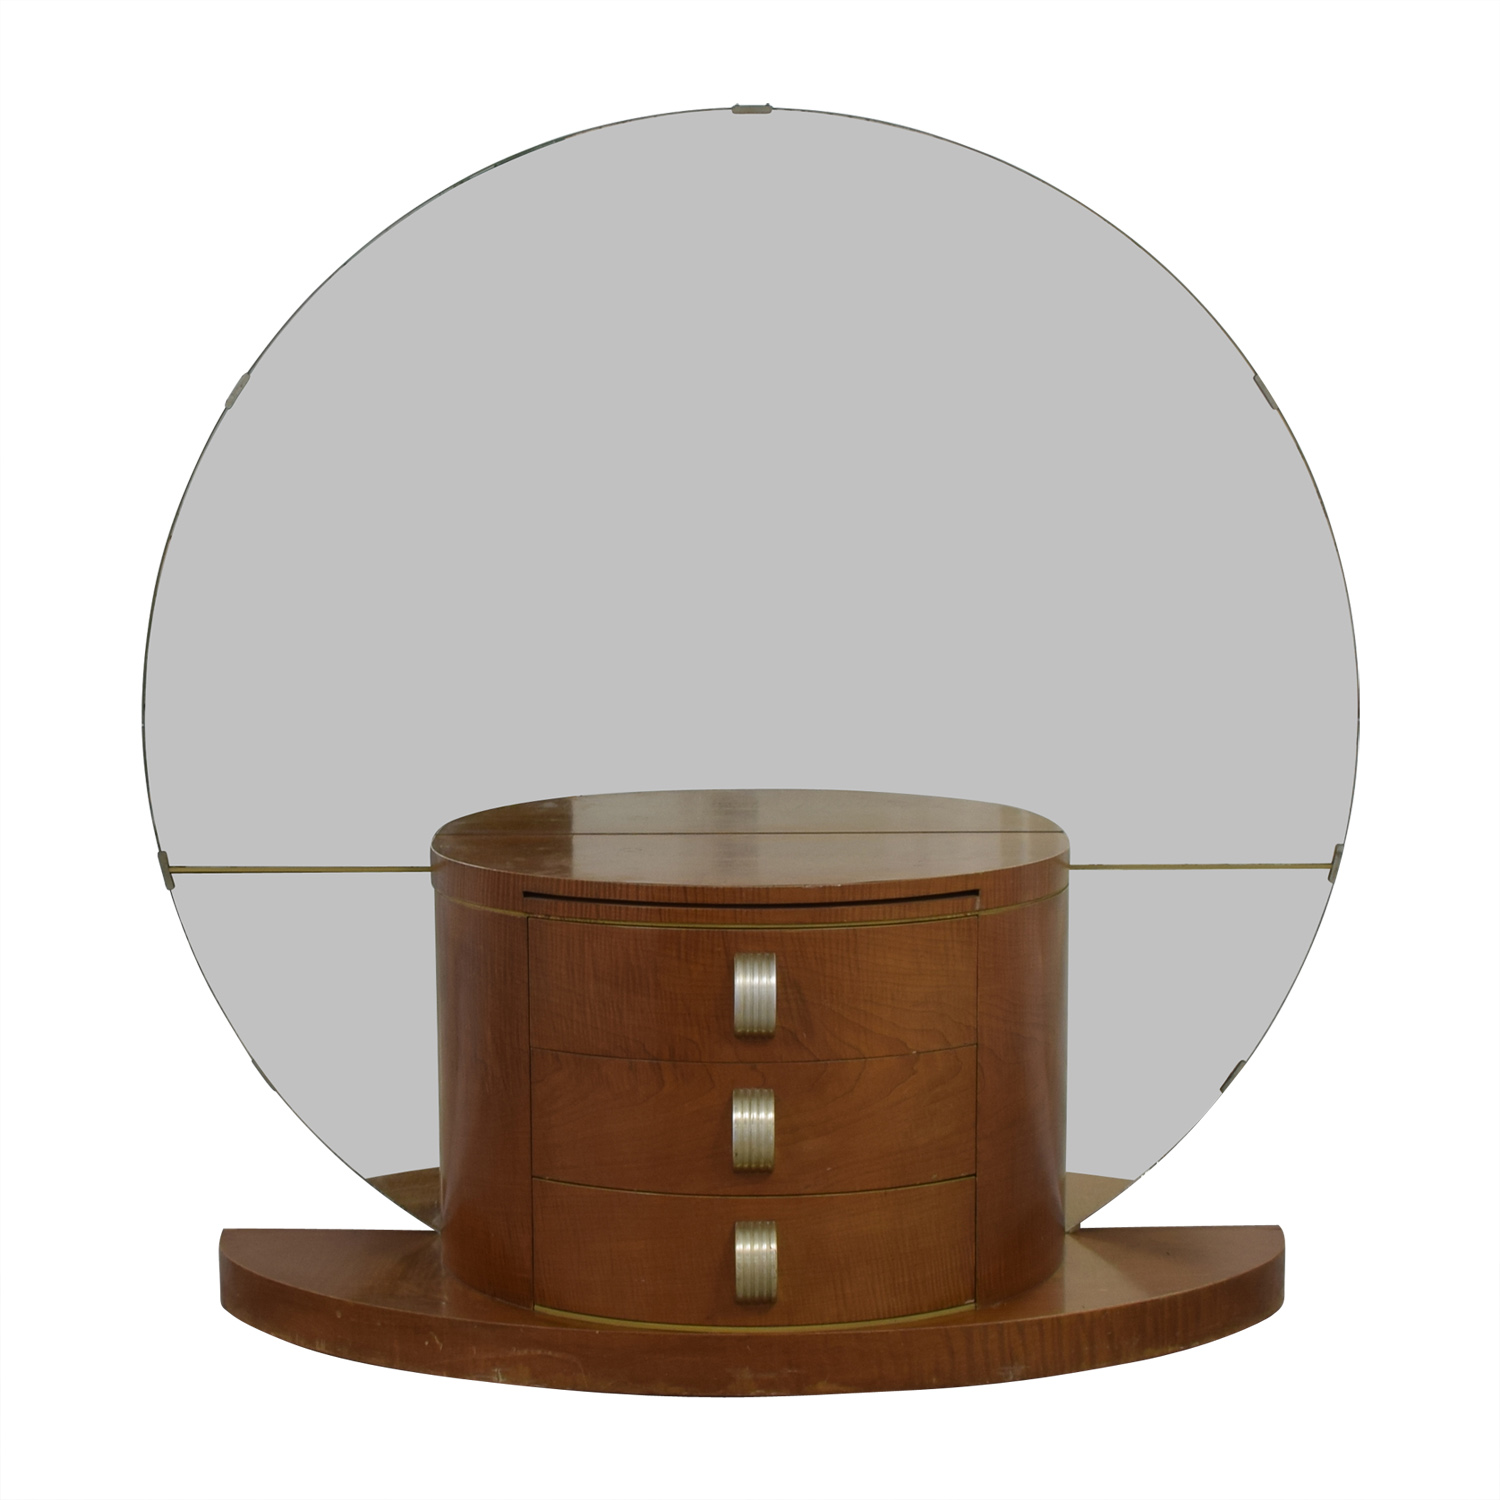 Modernage Art Deco Vanity with Large Round Mirror Modernage